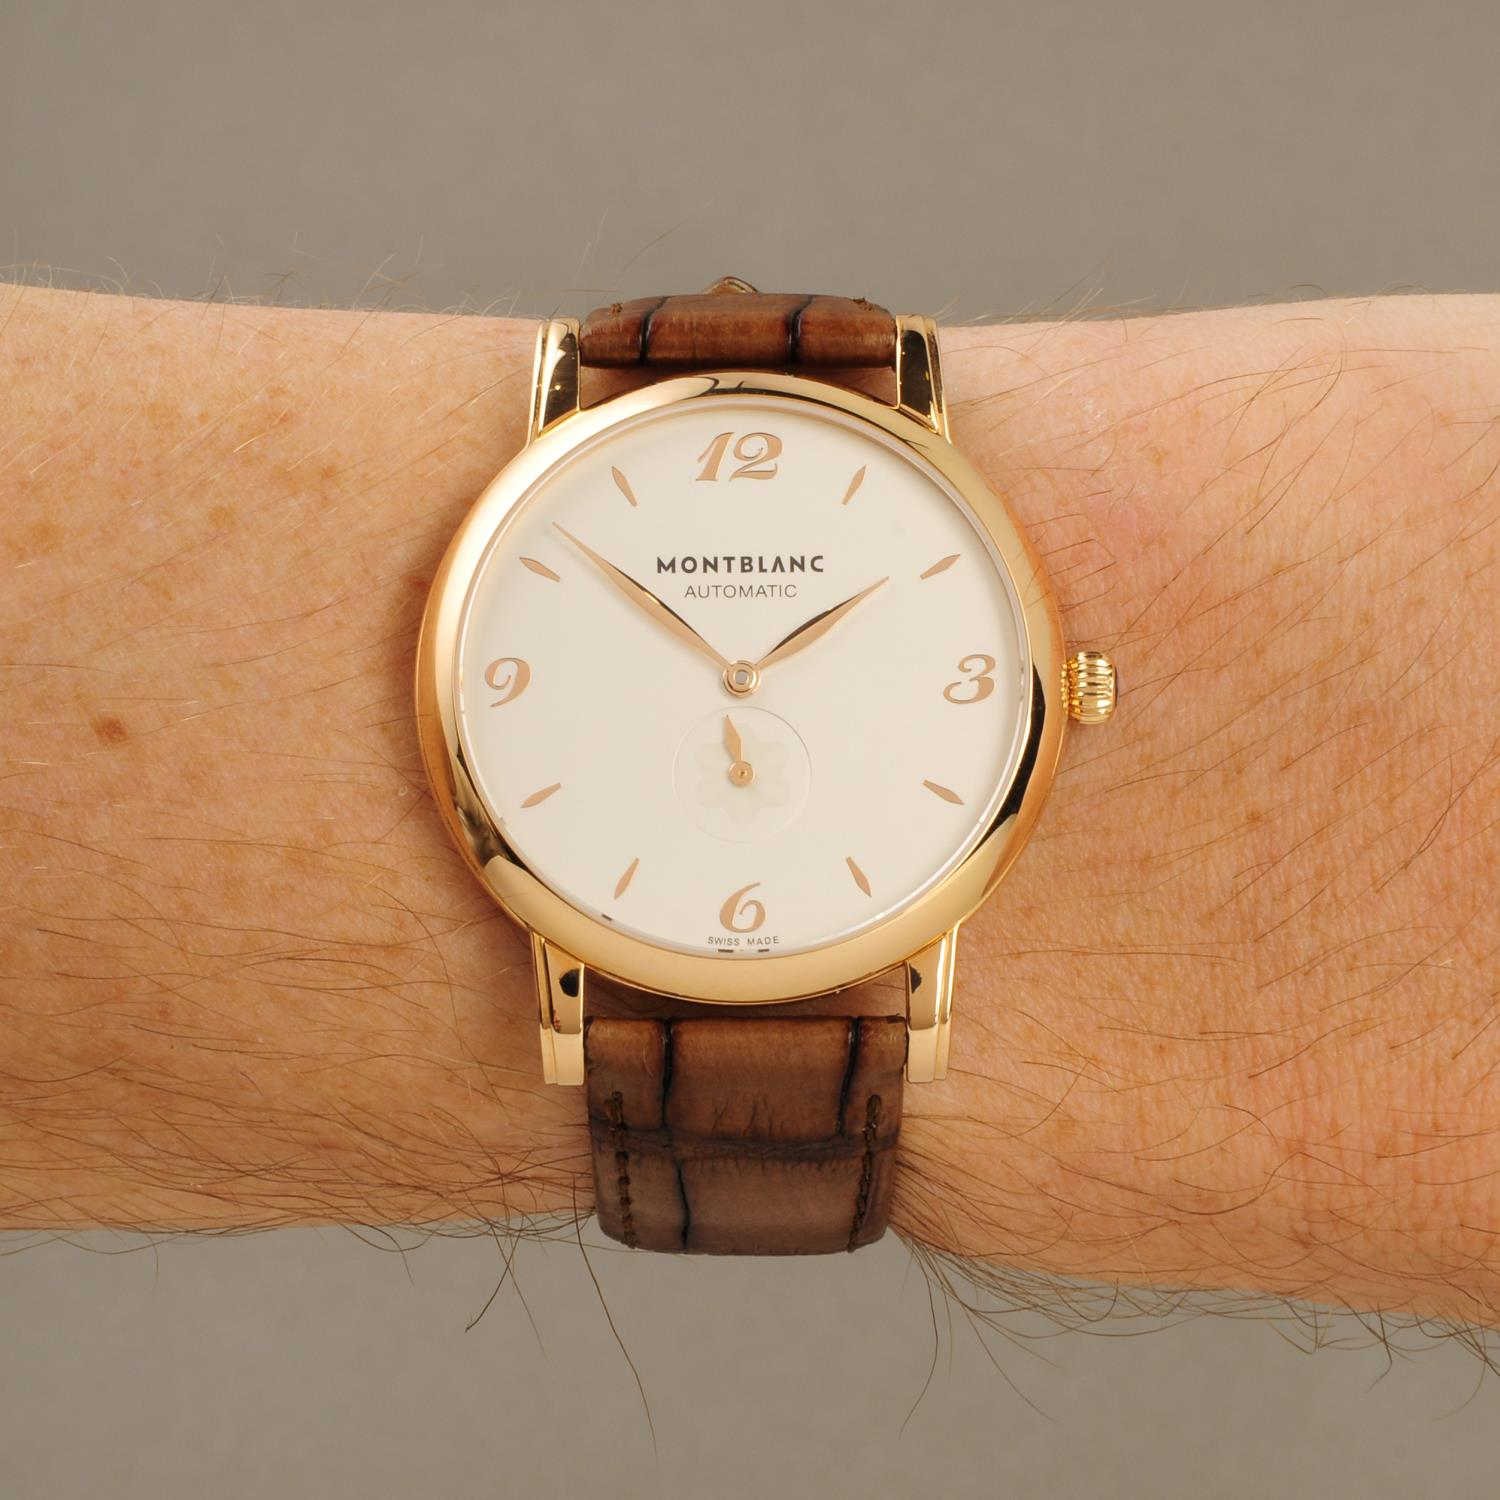 Lot 179 - MONTBLANC - a gentleman's Star Classique wrist watch. 18ct rose gold case with exhibition case back.